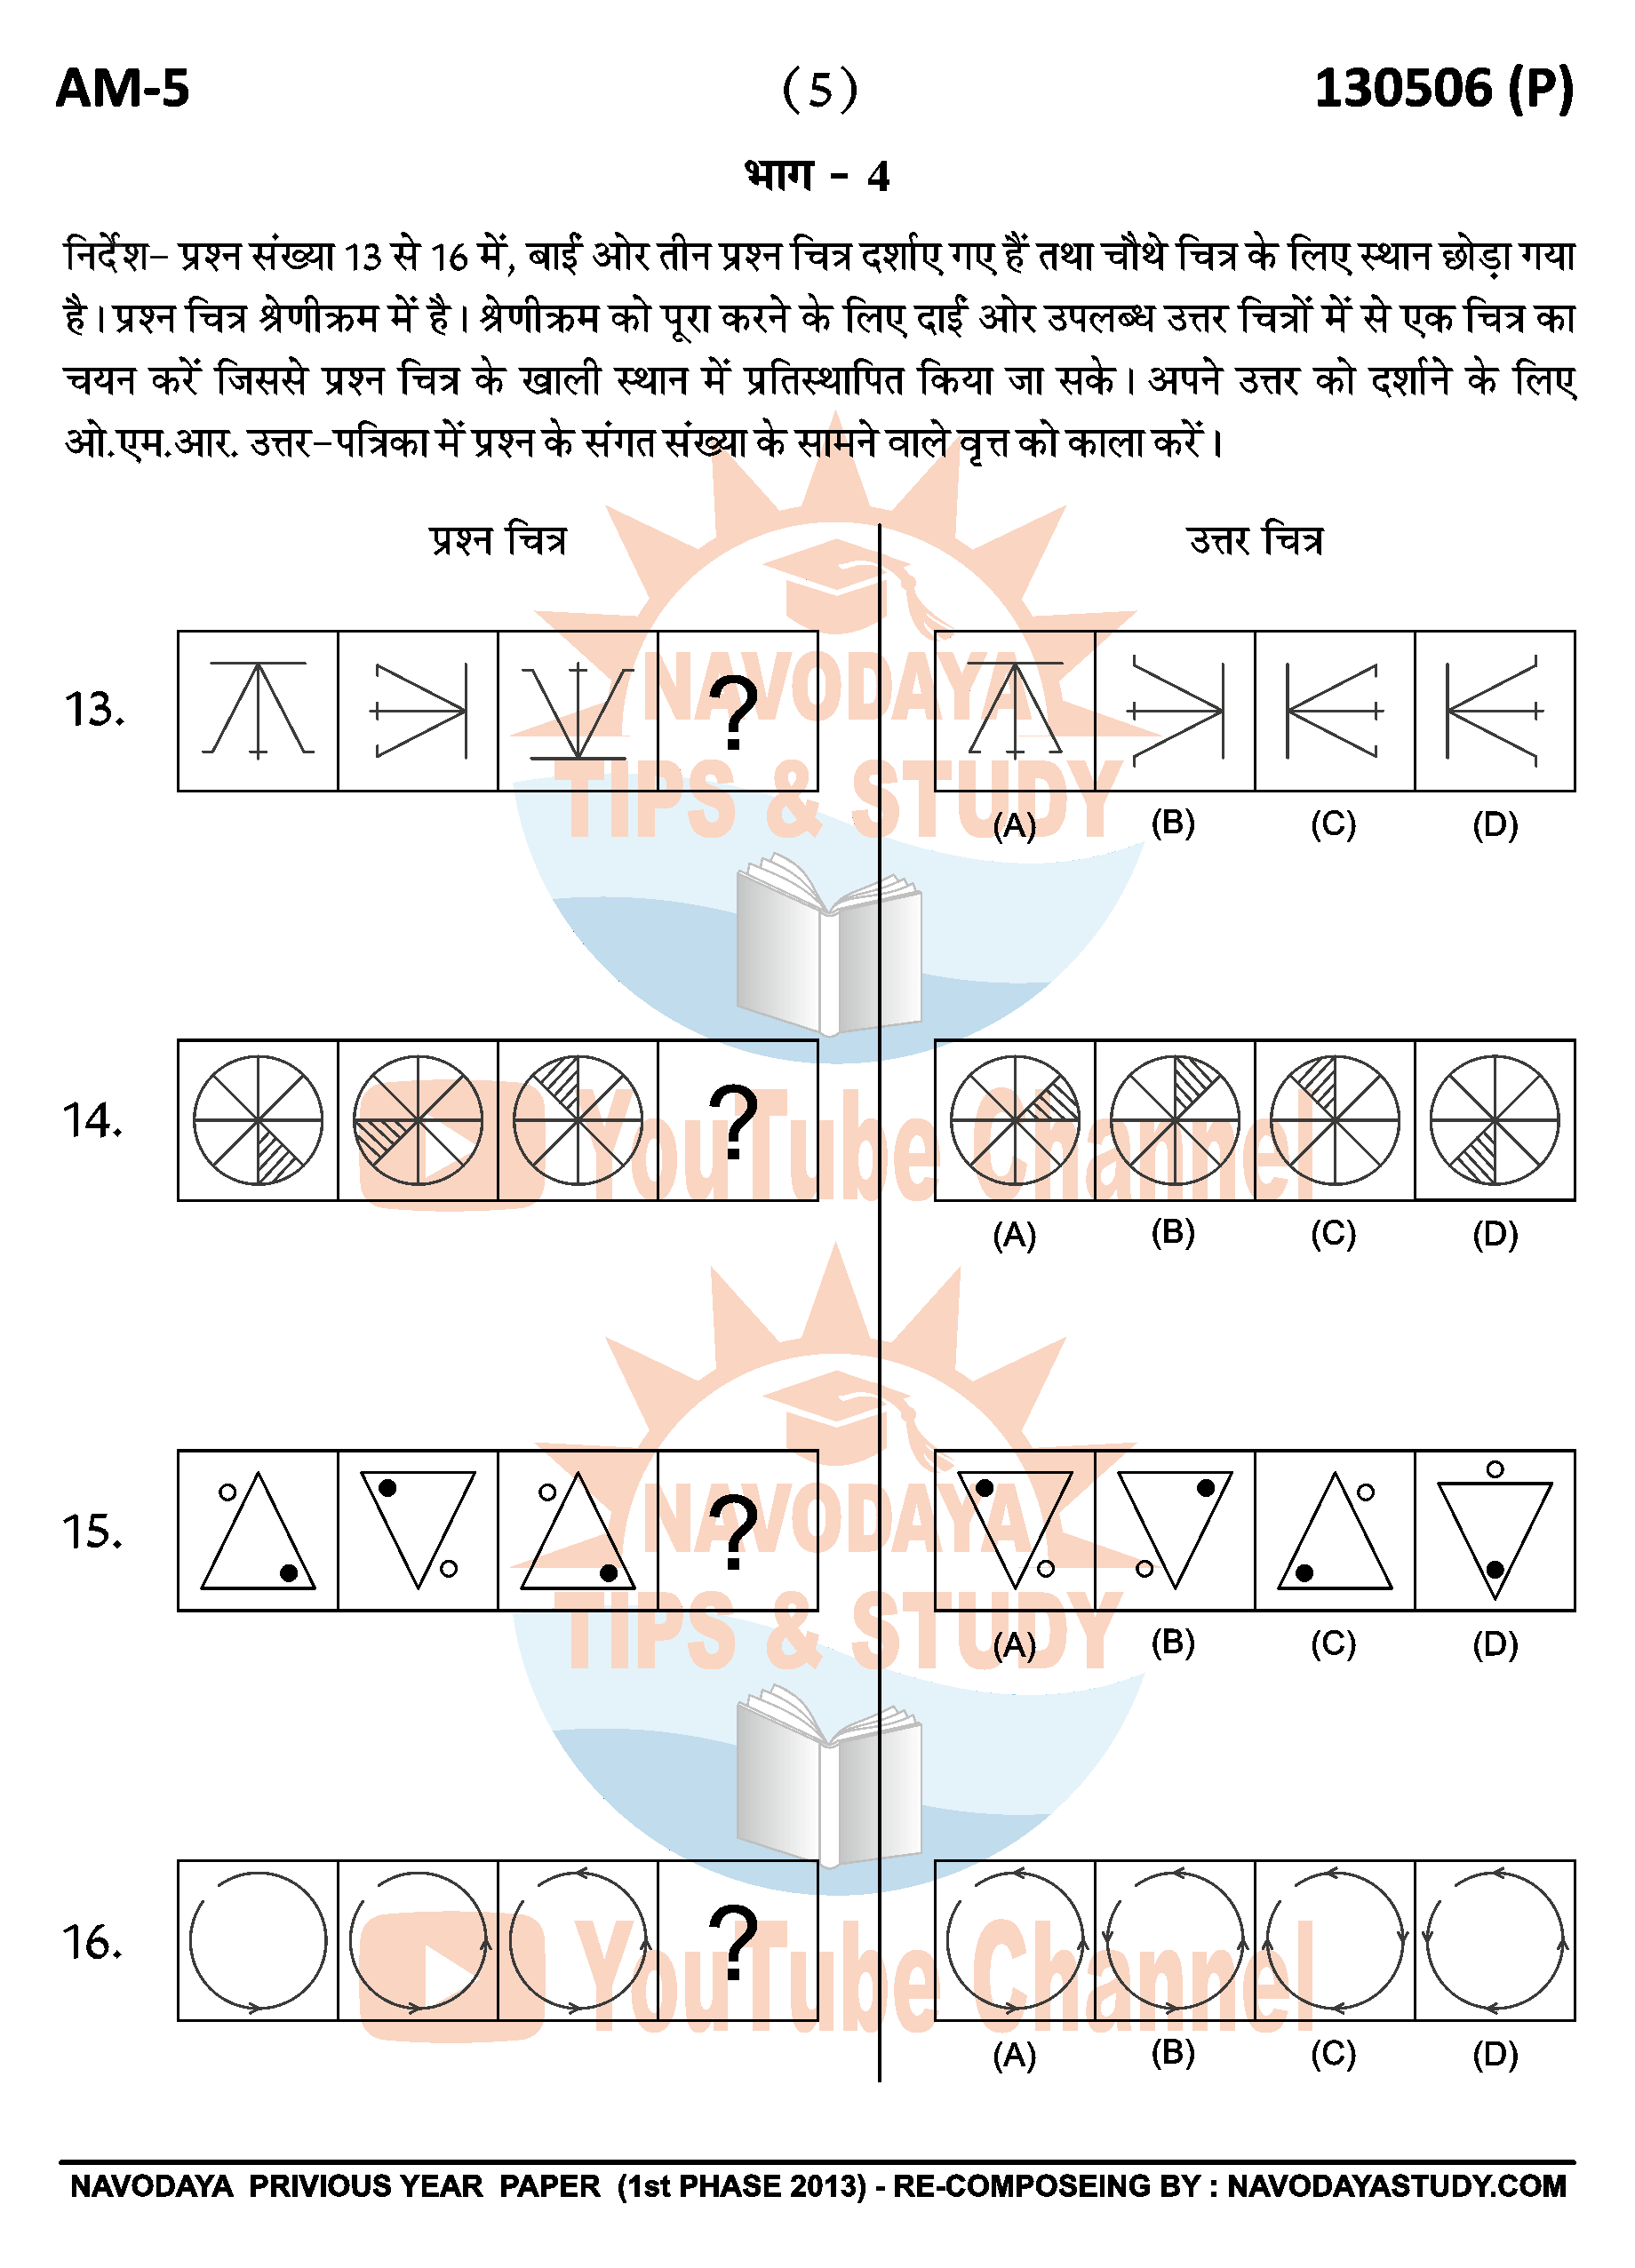 NAVODAYA 2013 AM - 5 HIND OLD YEAR QUESTION PAPER PAGE NO. 05